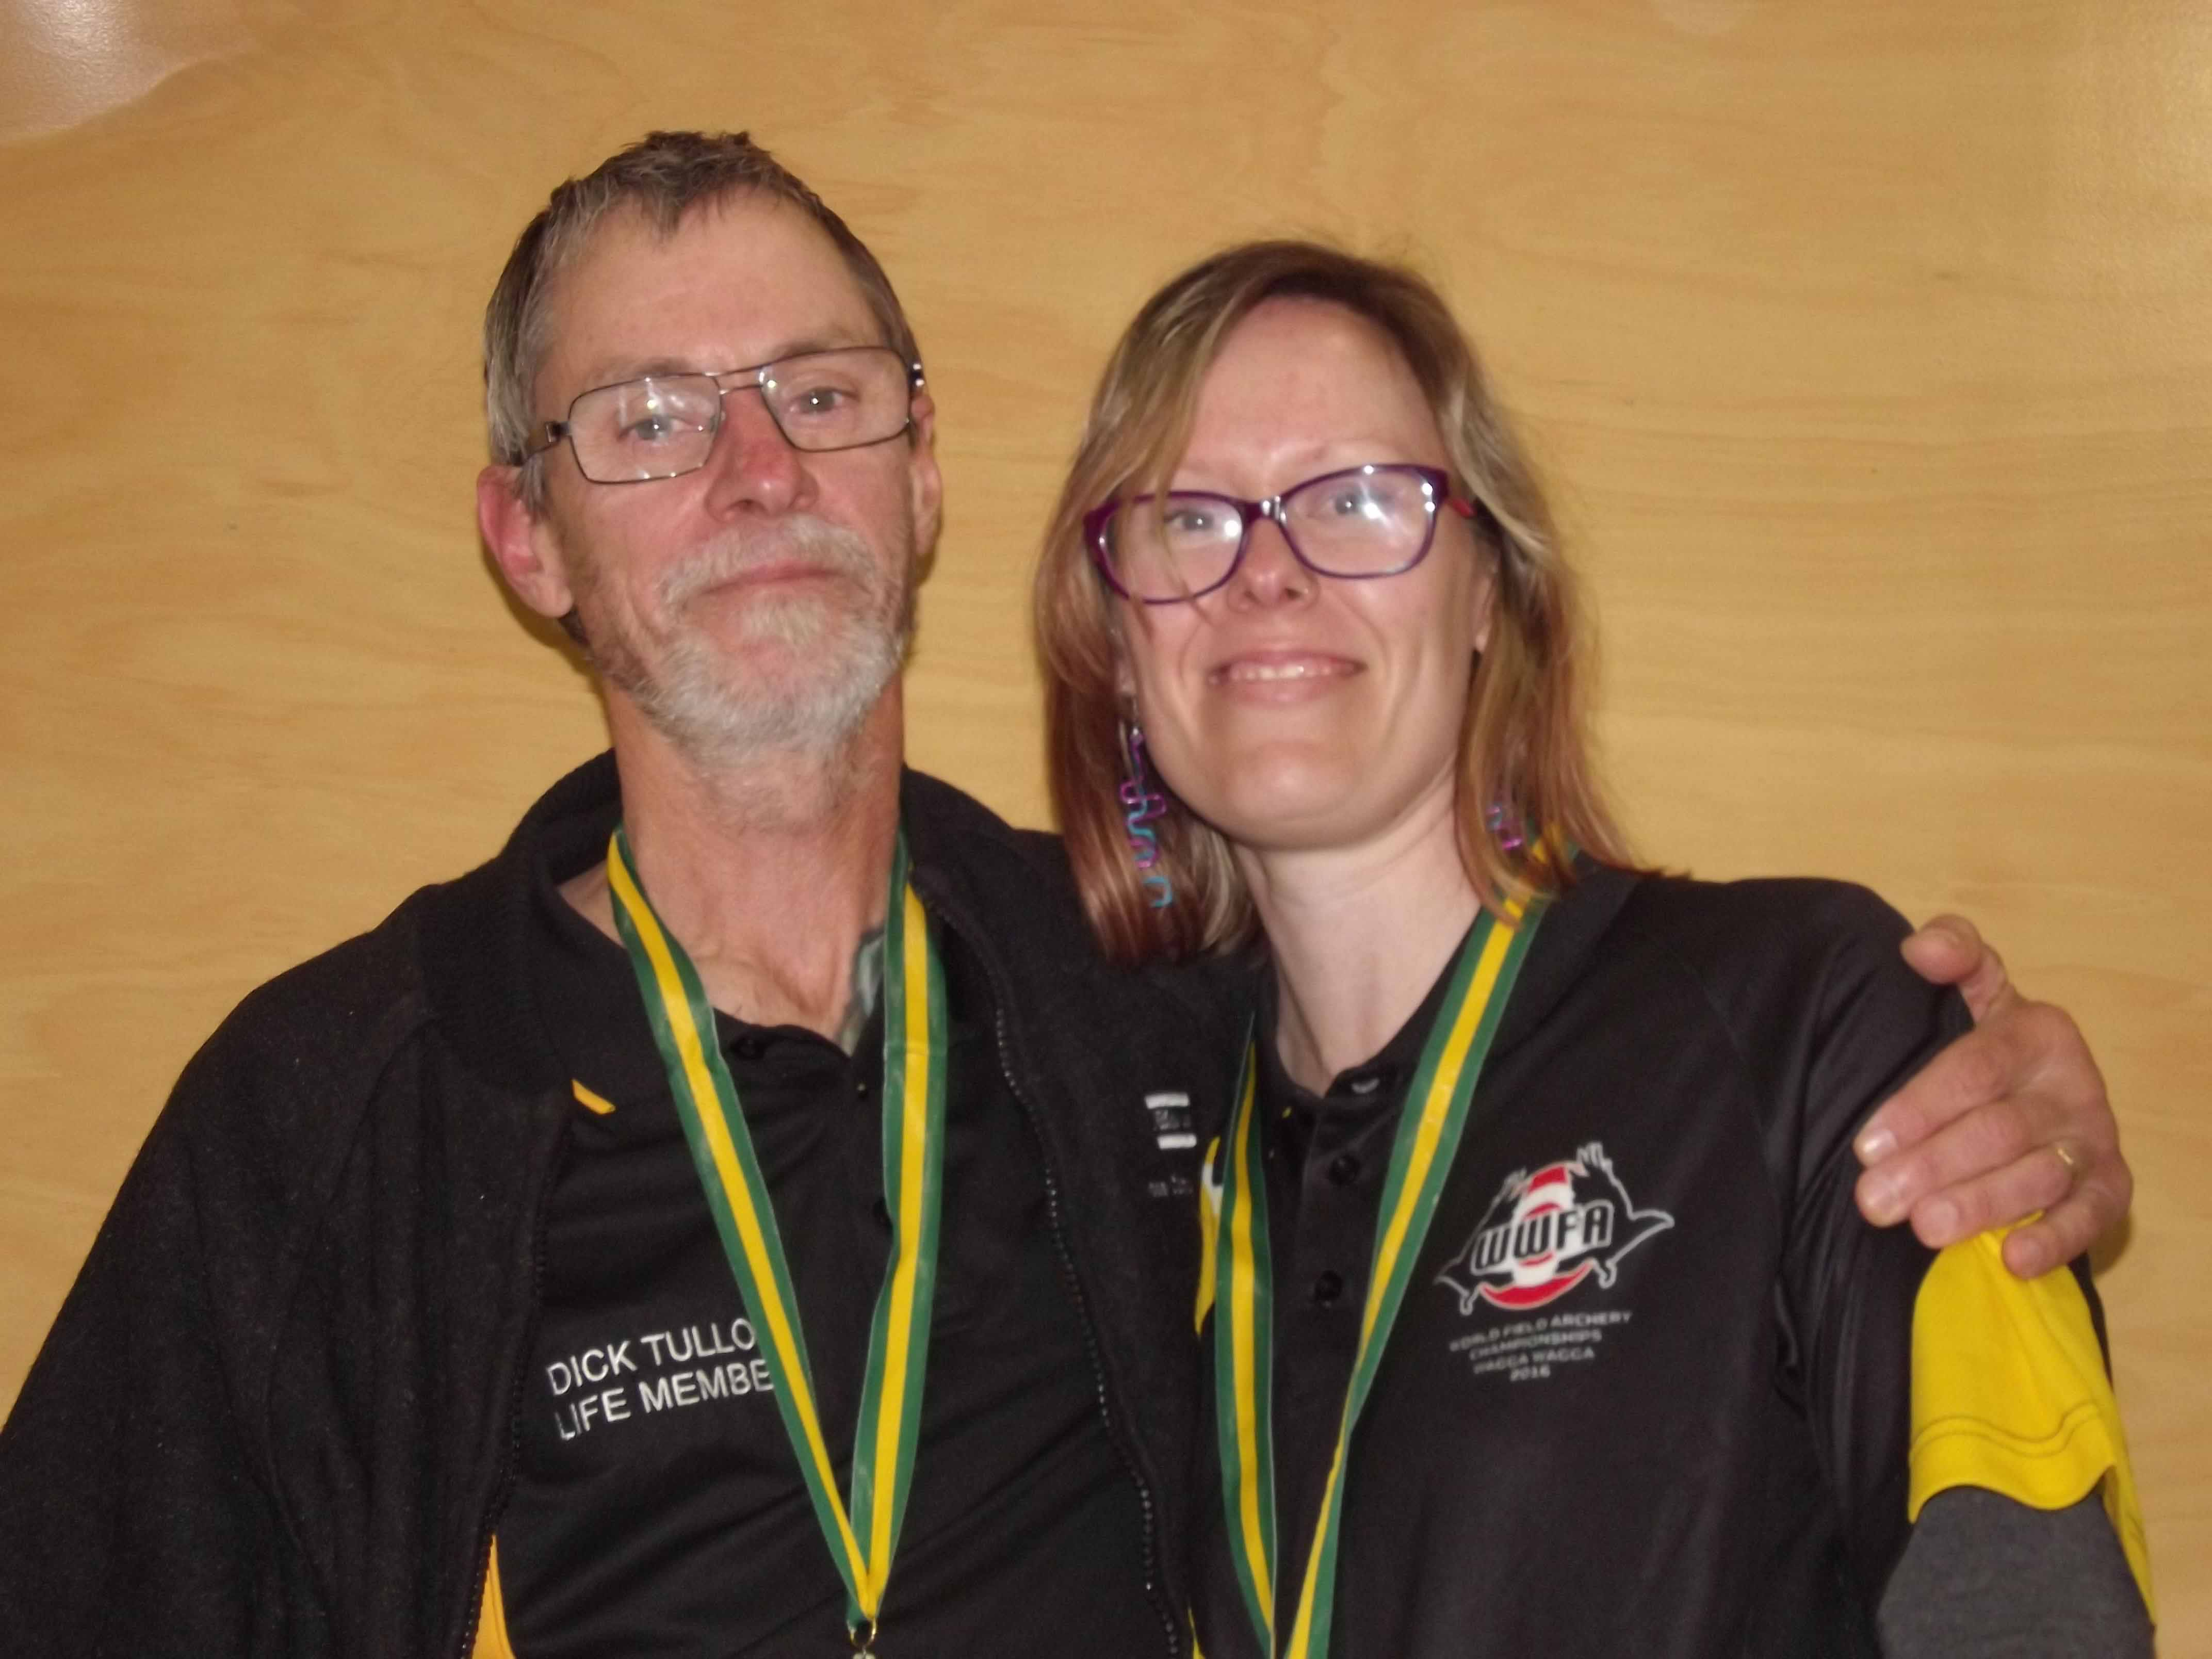 Dick Tulloh and daughter Bobbie recently competed at the World Field Archery  Championships in Wagga Wagga with both bringing home silver medals in their  respective events.  Photo contributed